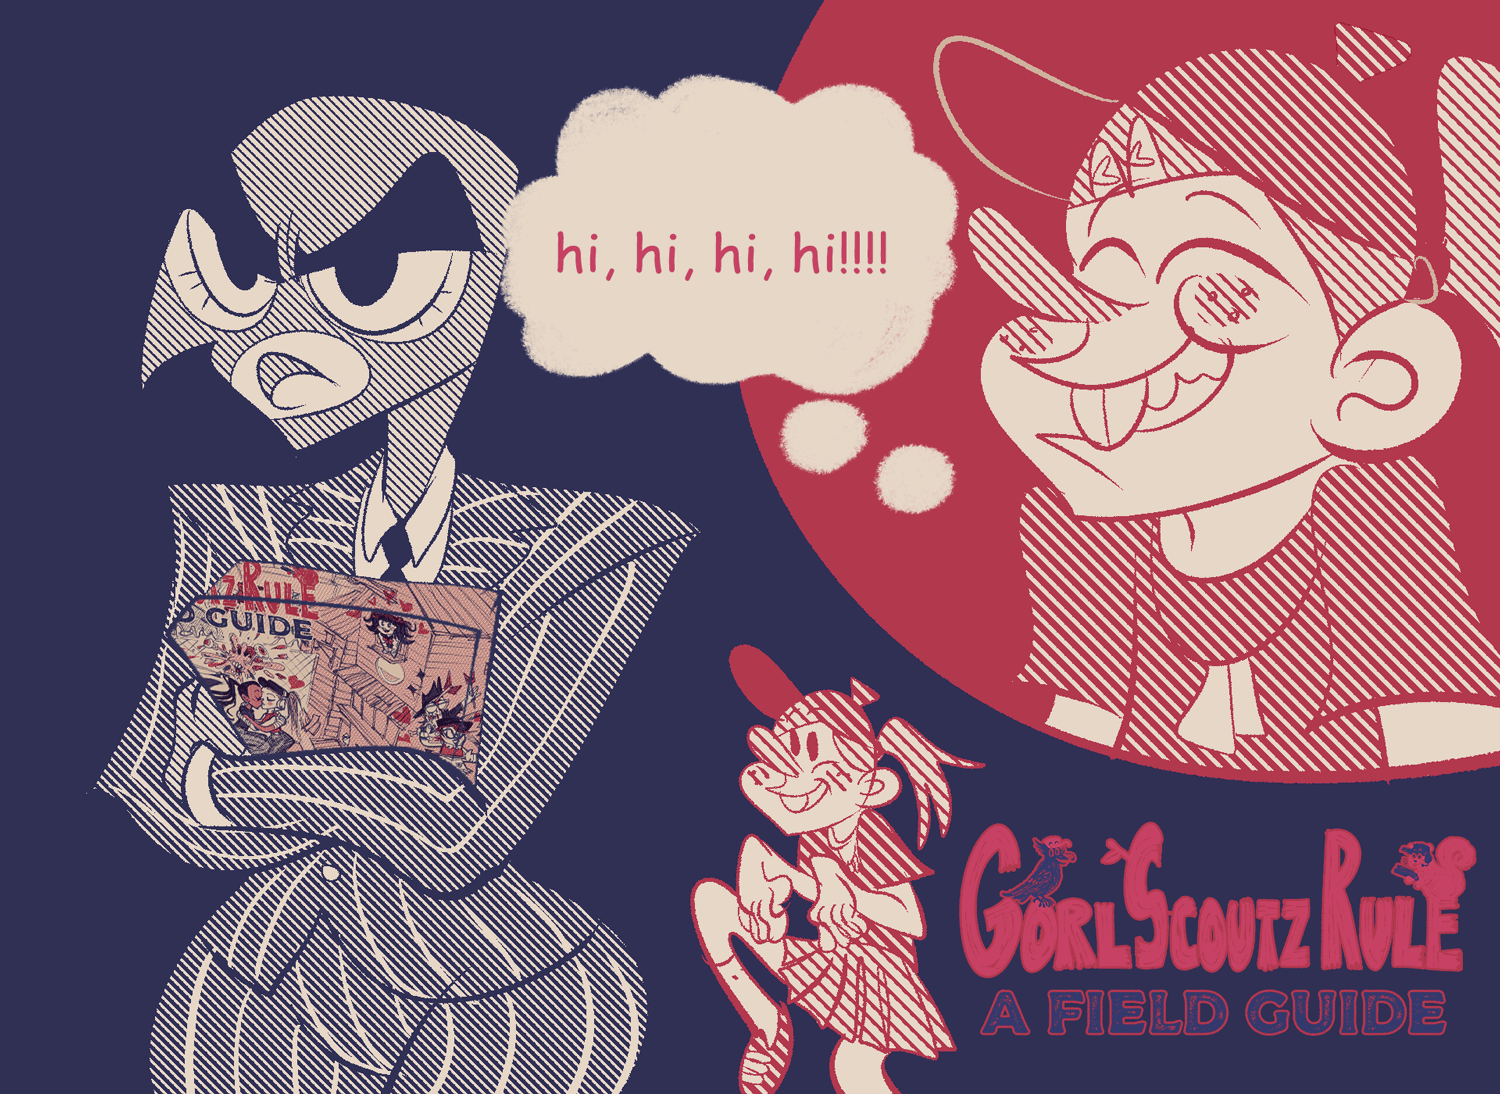 gorl scout zine cover image